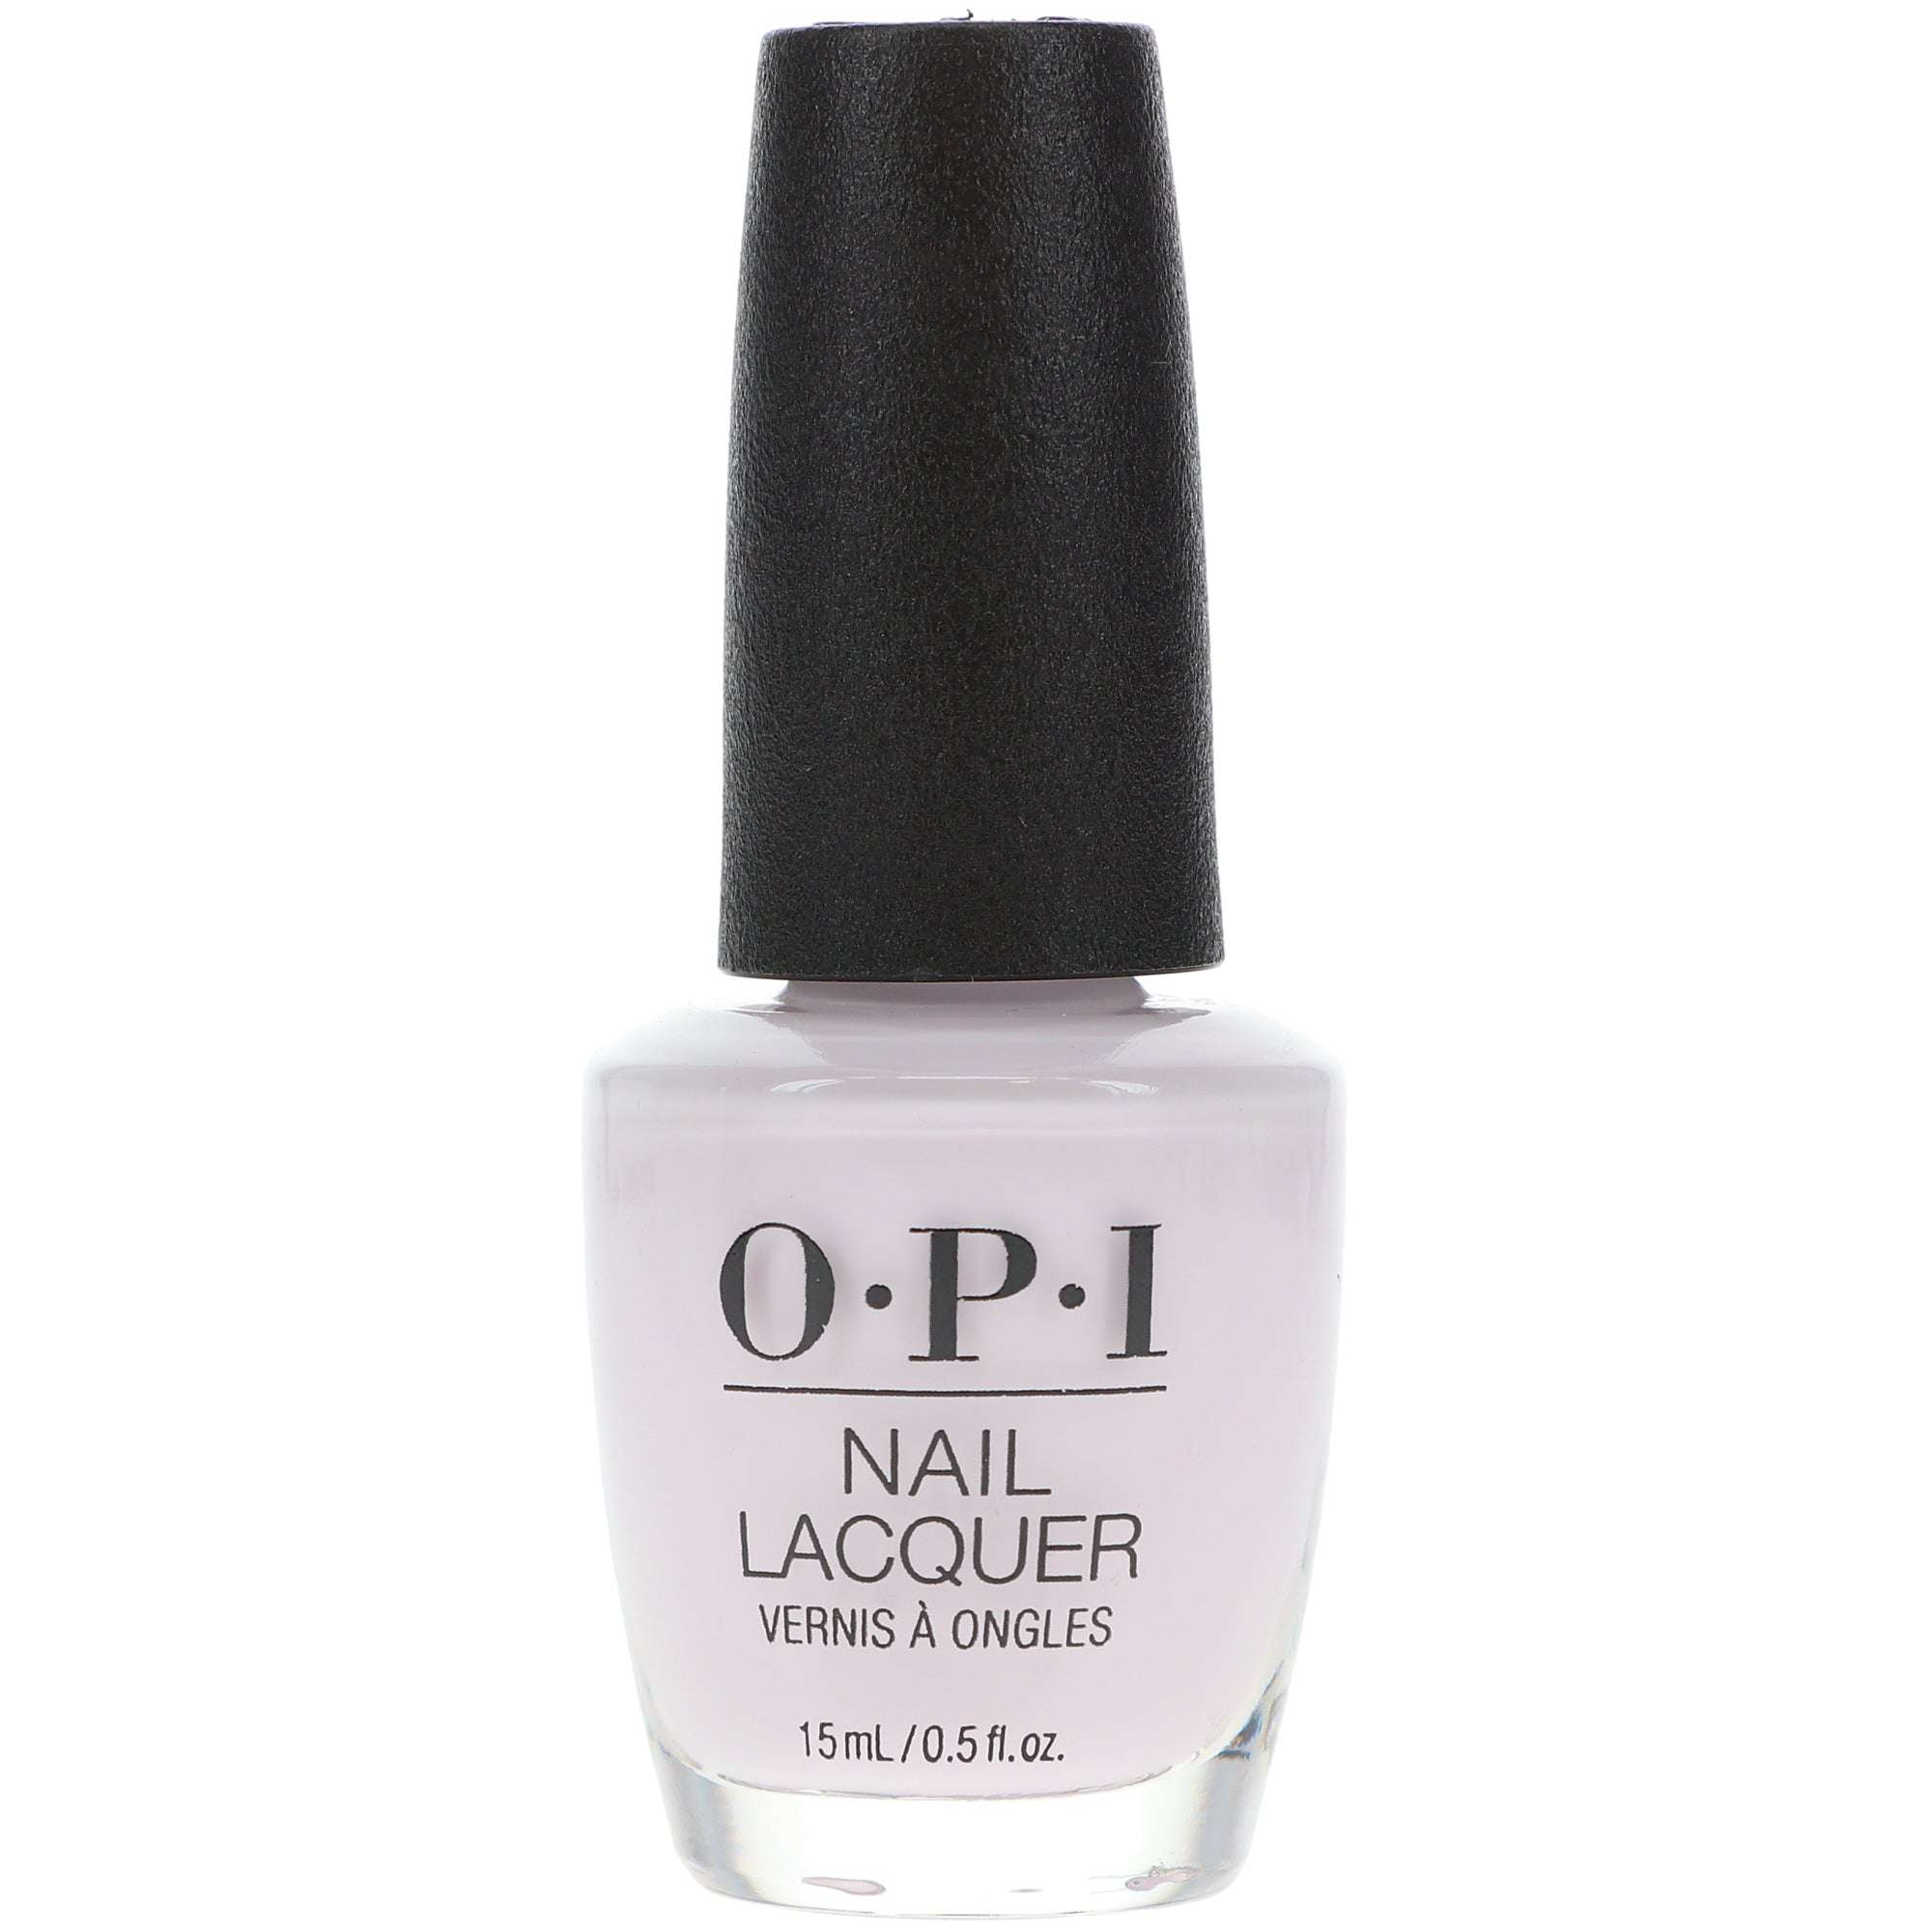 OPI Nail Lacquer - Hue Is The Artist?